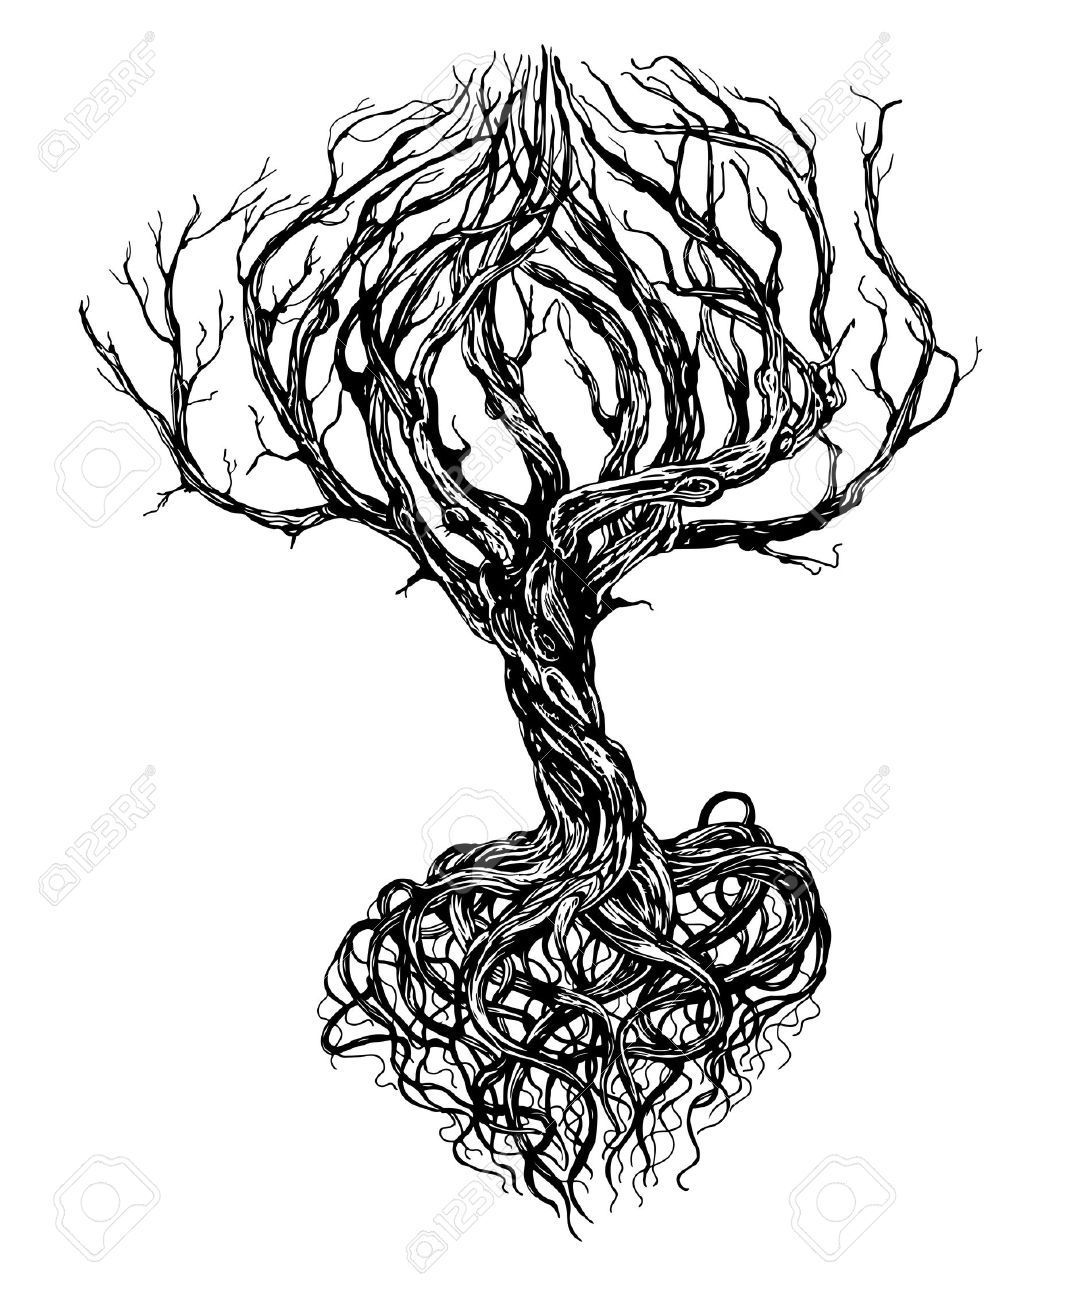 Hand Drawn Old Bare Tree With Crooked Branches